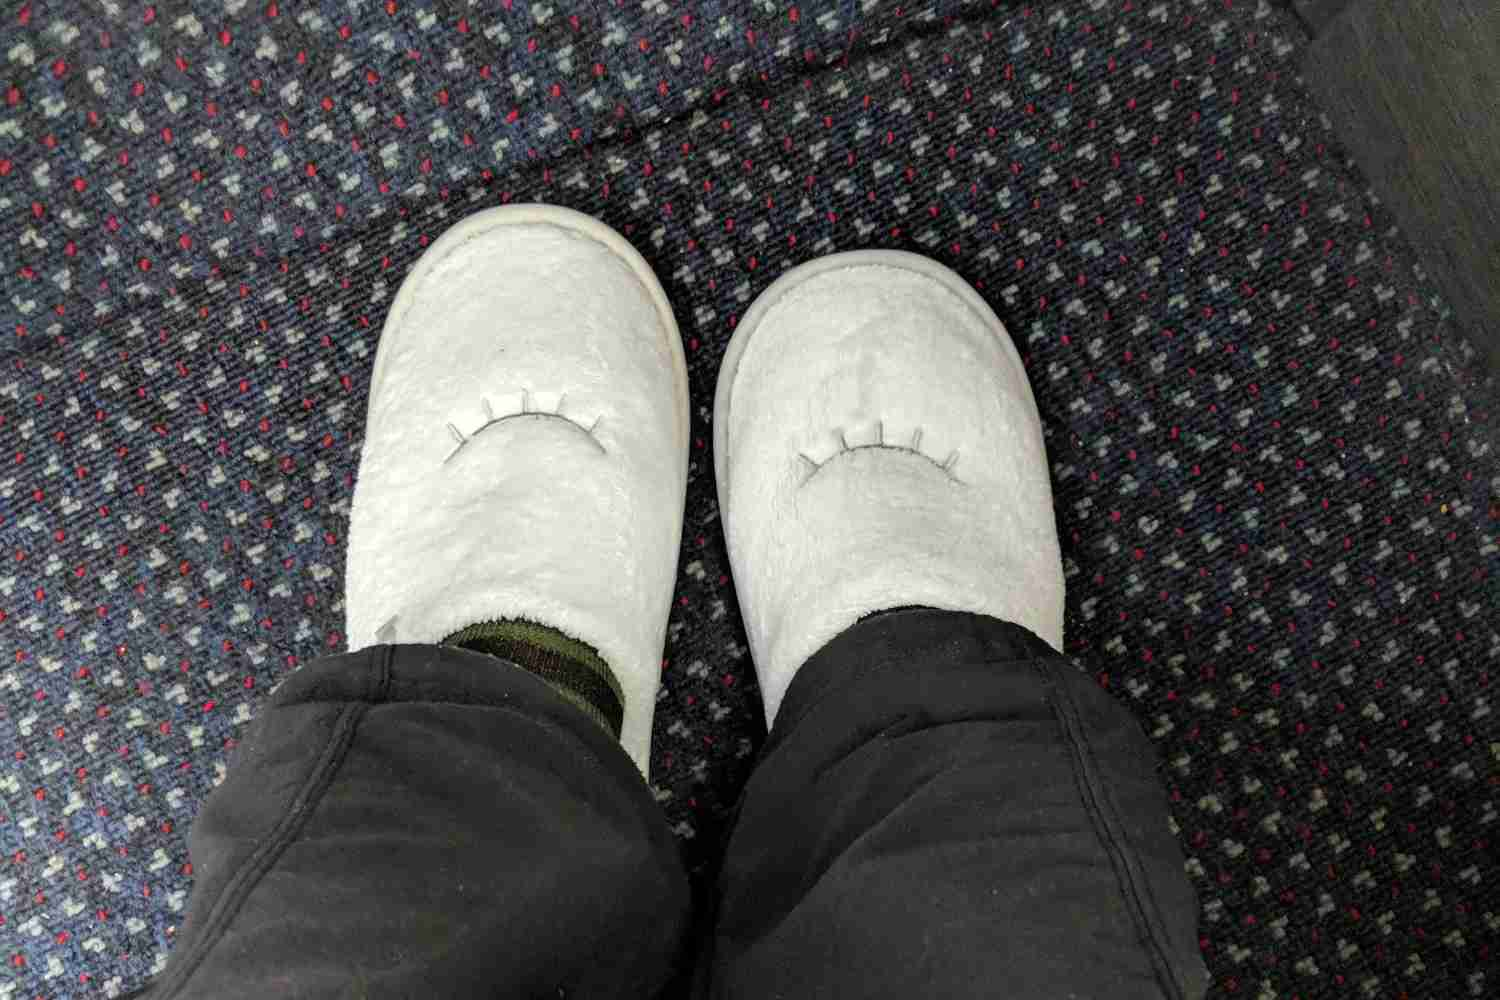 Casper slippers on on another flight.